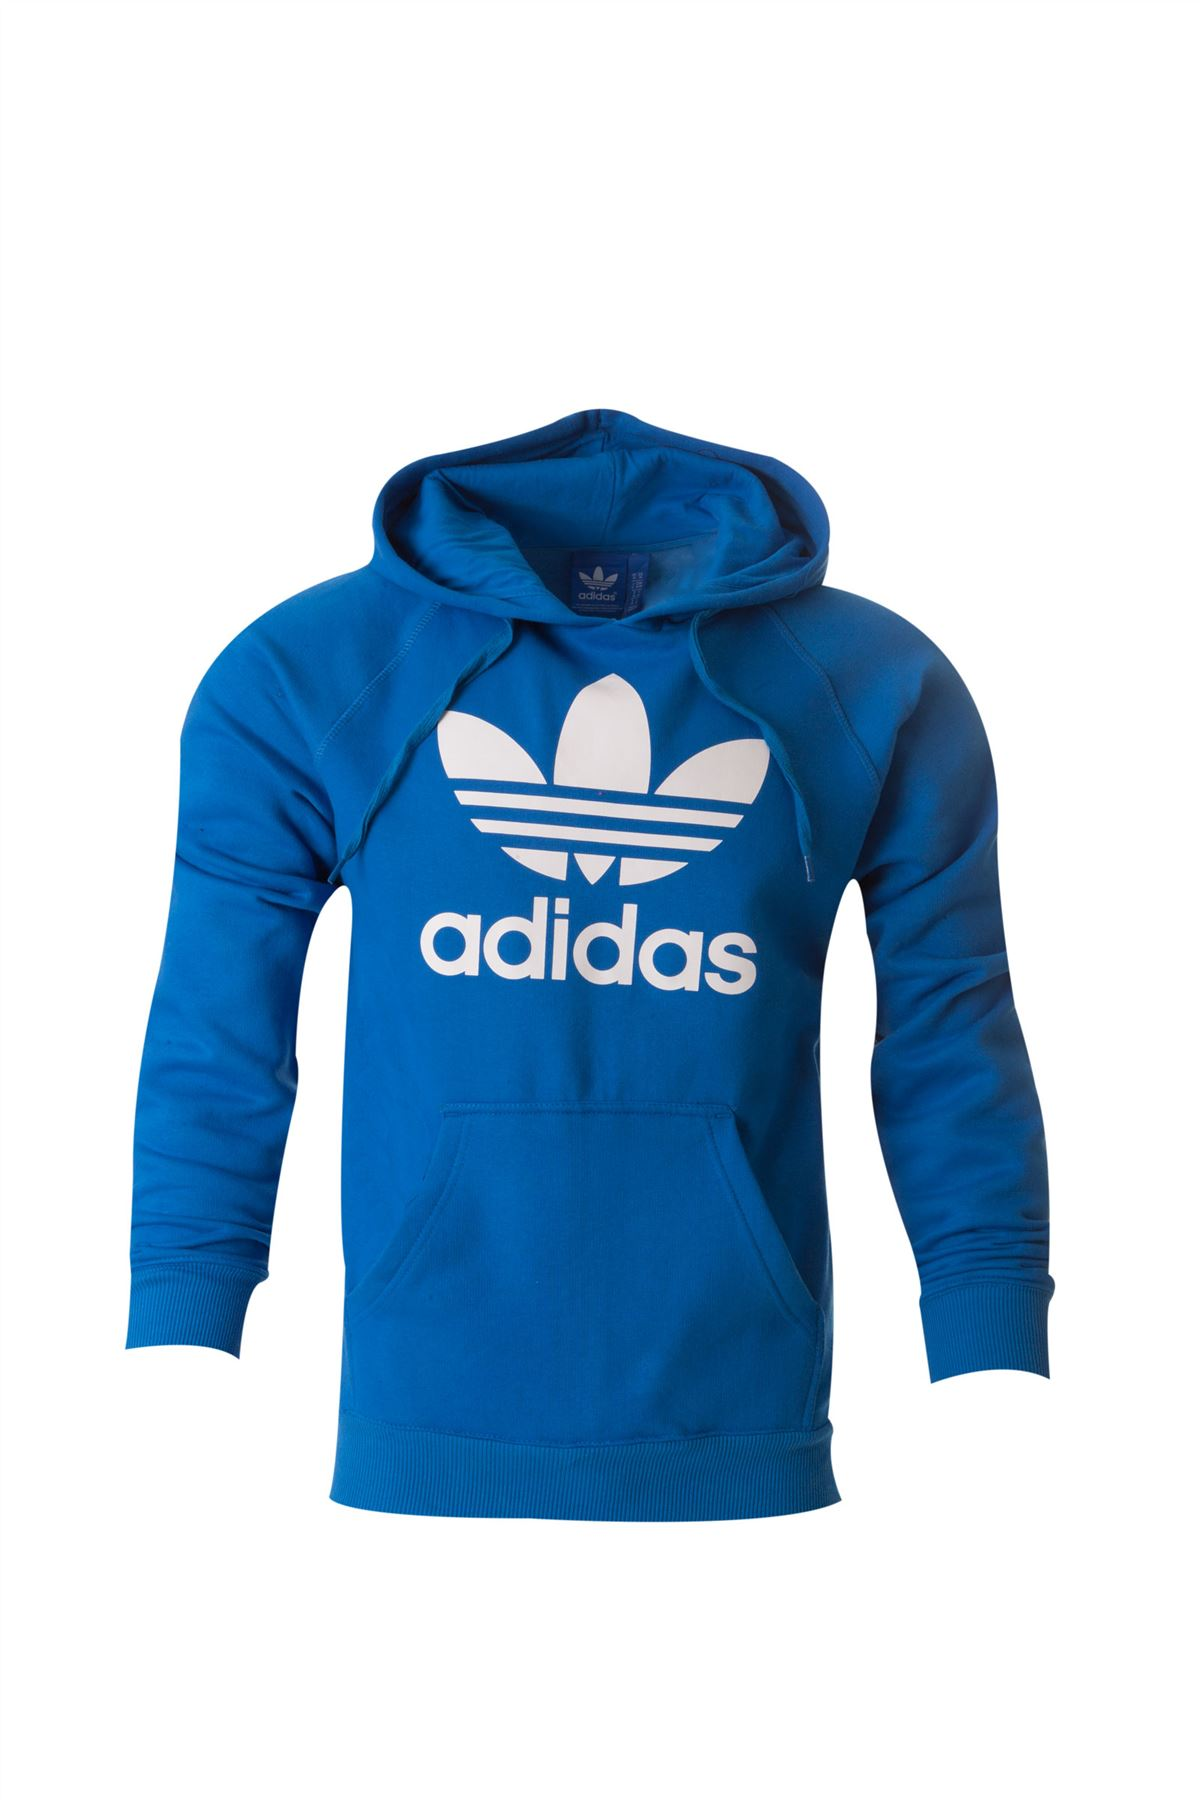 Adidas Originals Mens Trefoil Fleece Hoodie Hooded Sweatshirt Top Size S-XL c582cd6cd